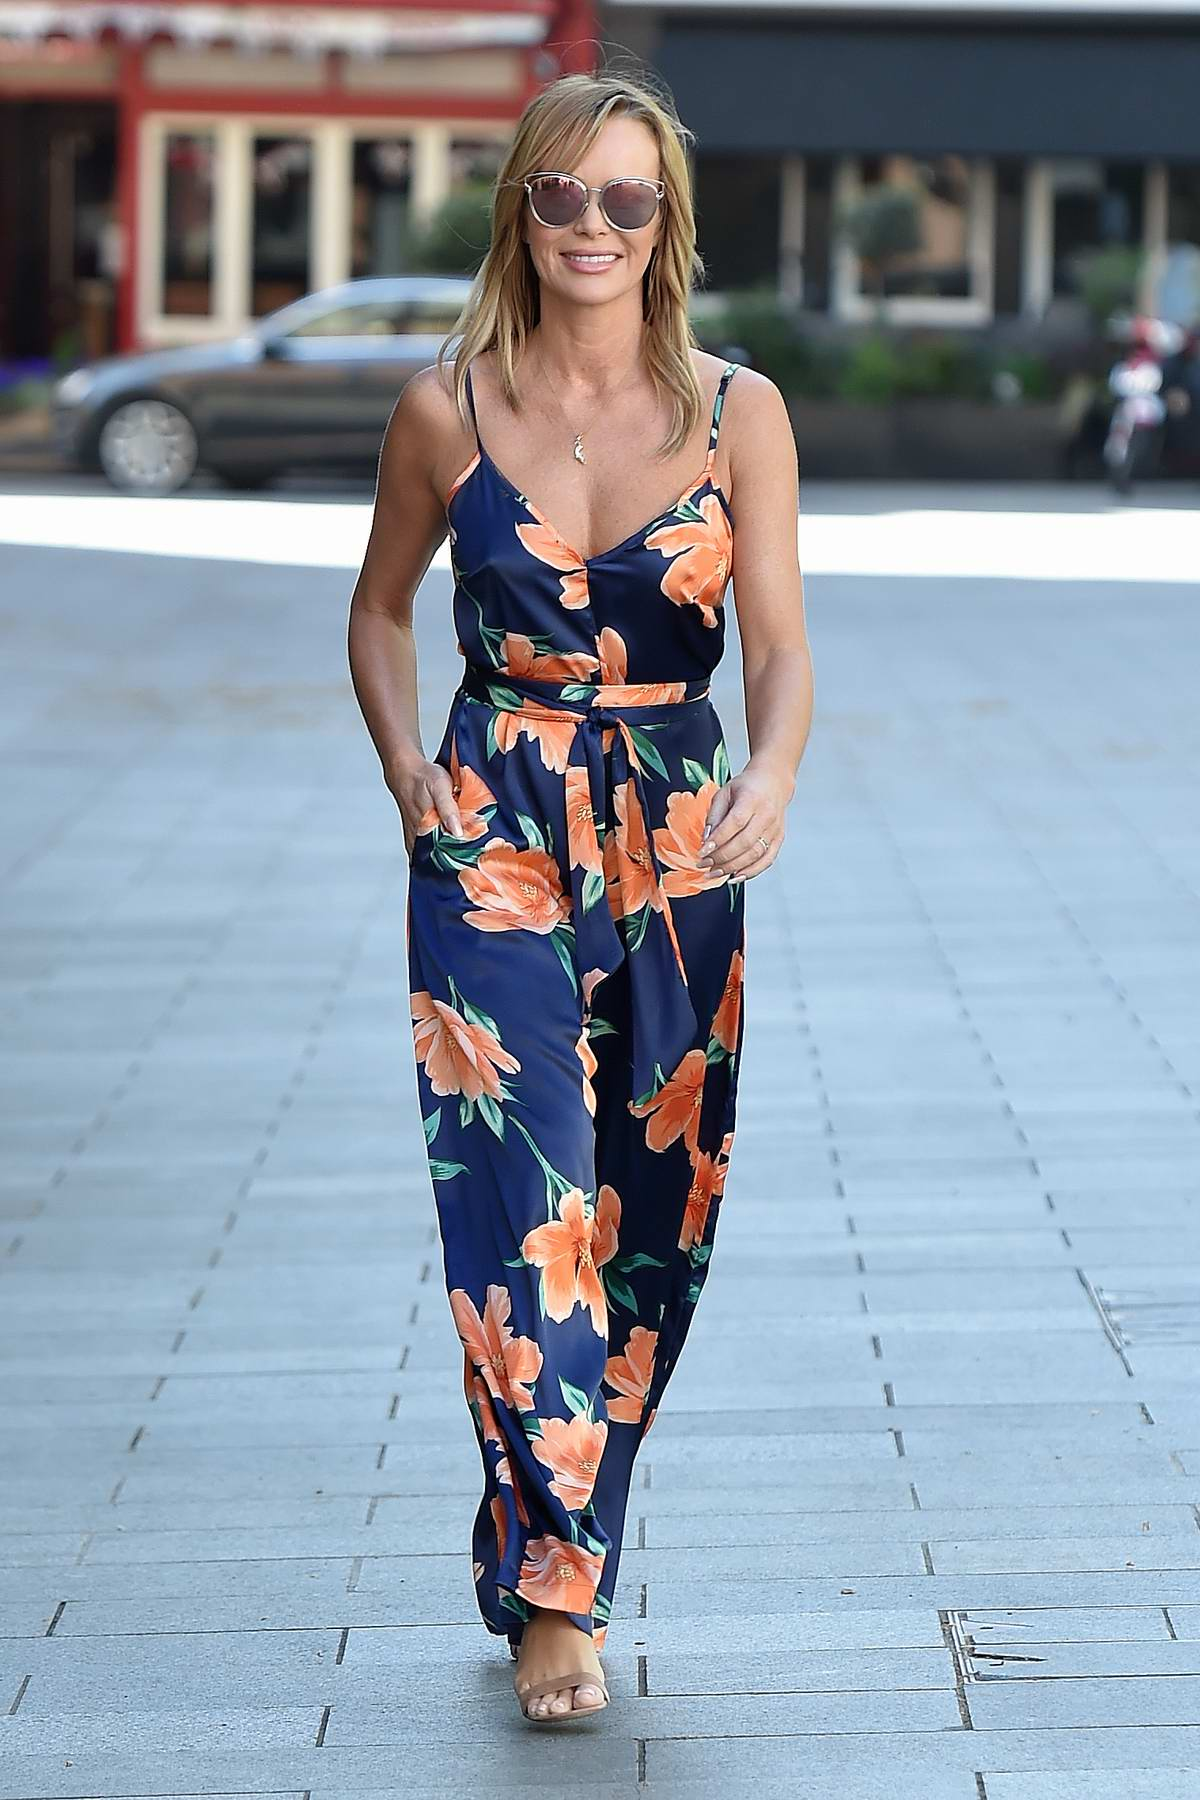 Amanda Holden dons a floral print jumpsuit as she leaves Global Studios in London, UK